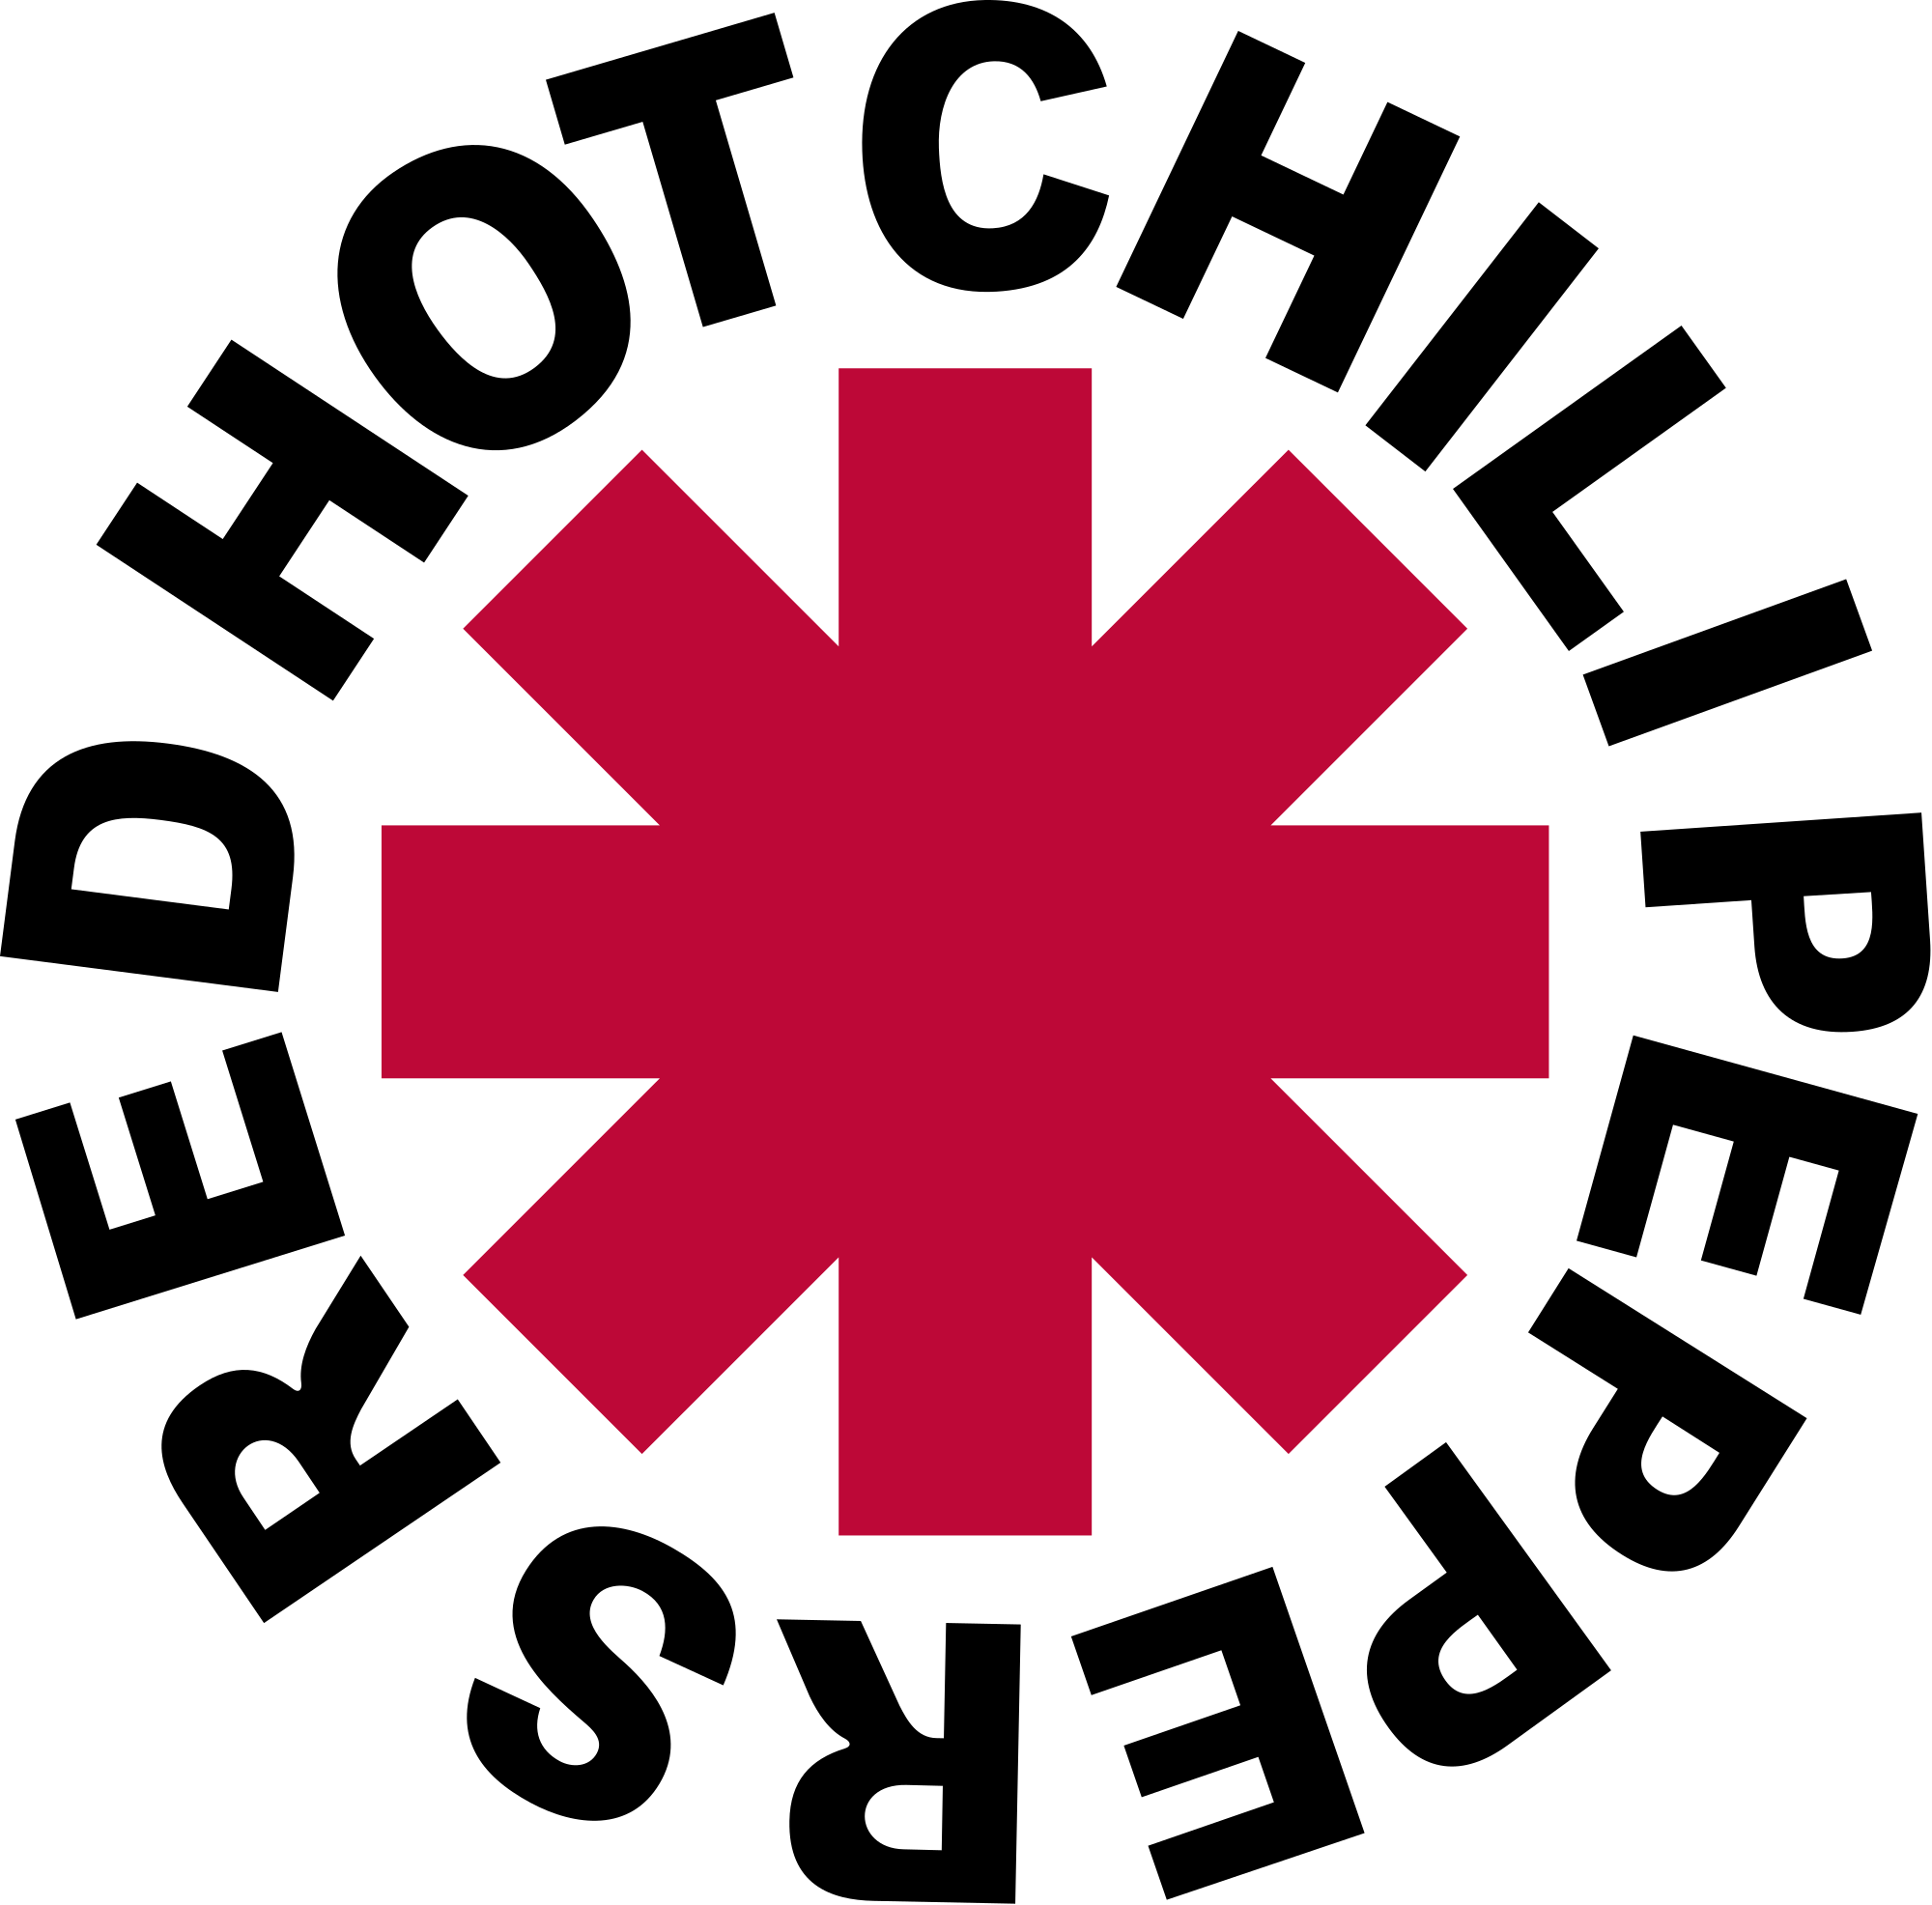 Red hot chili peppers logo png. File rhcp svg wikimedia